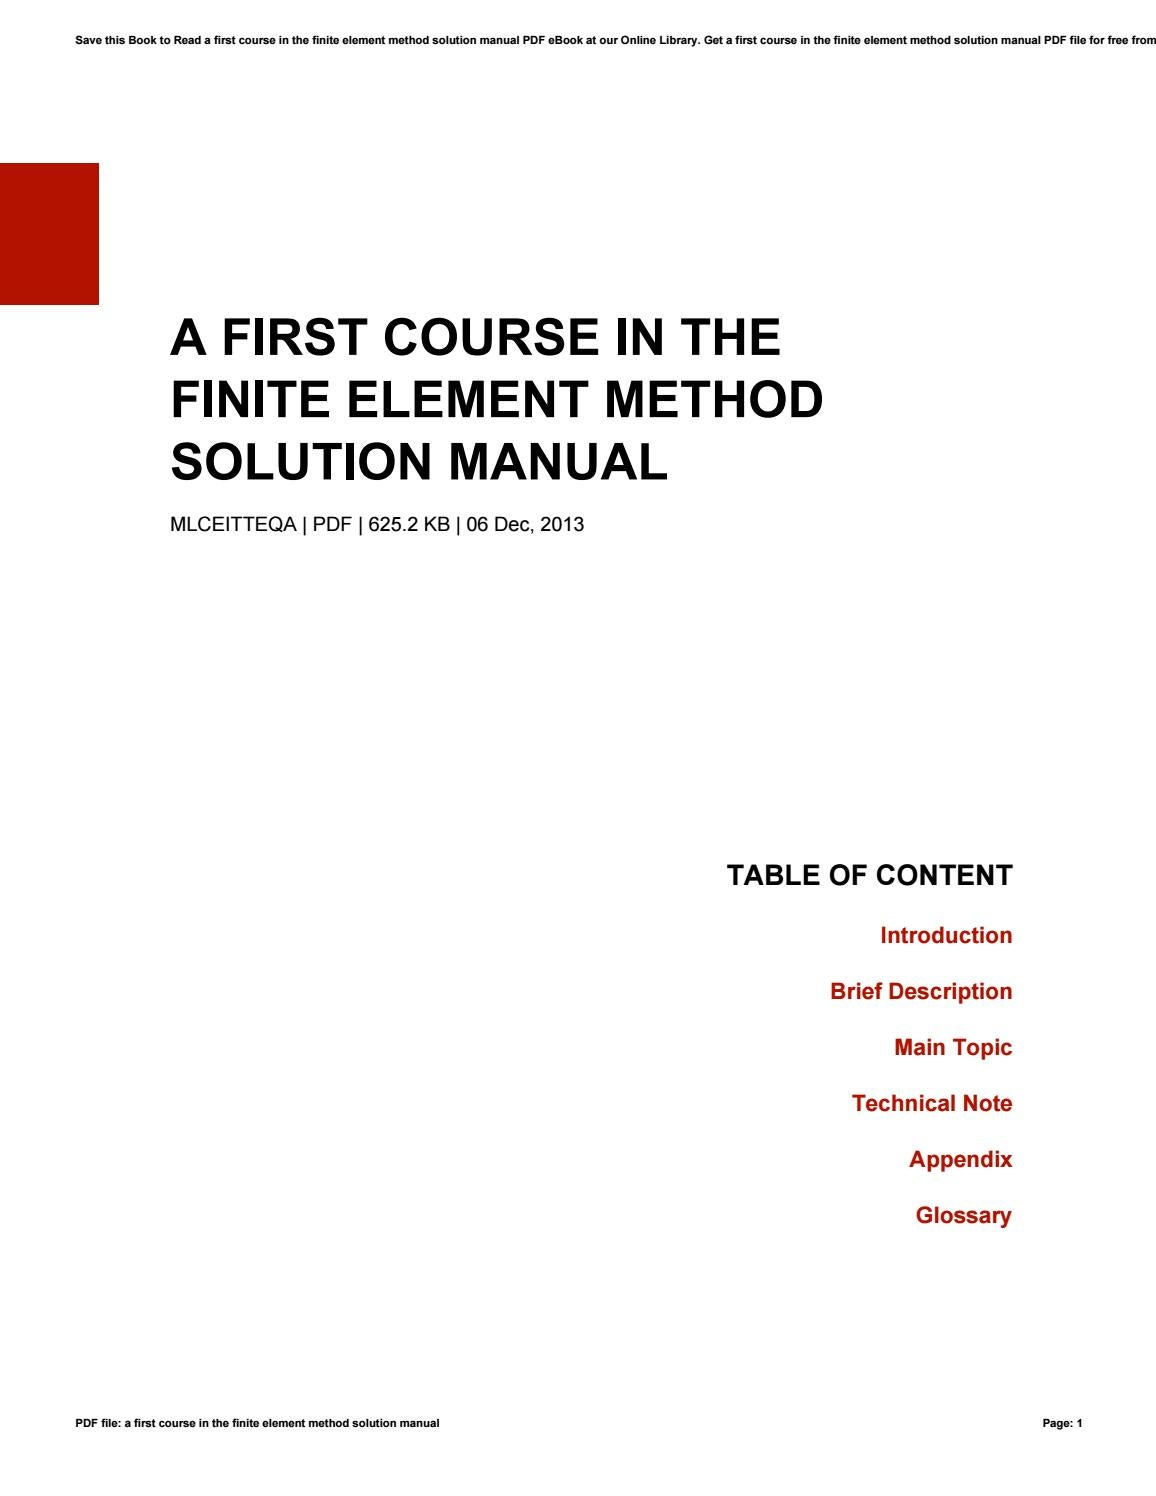 A first course in the finite element method solution manual by Brandi -  issuu